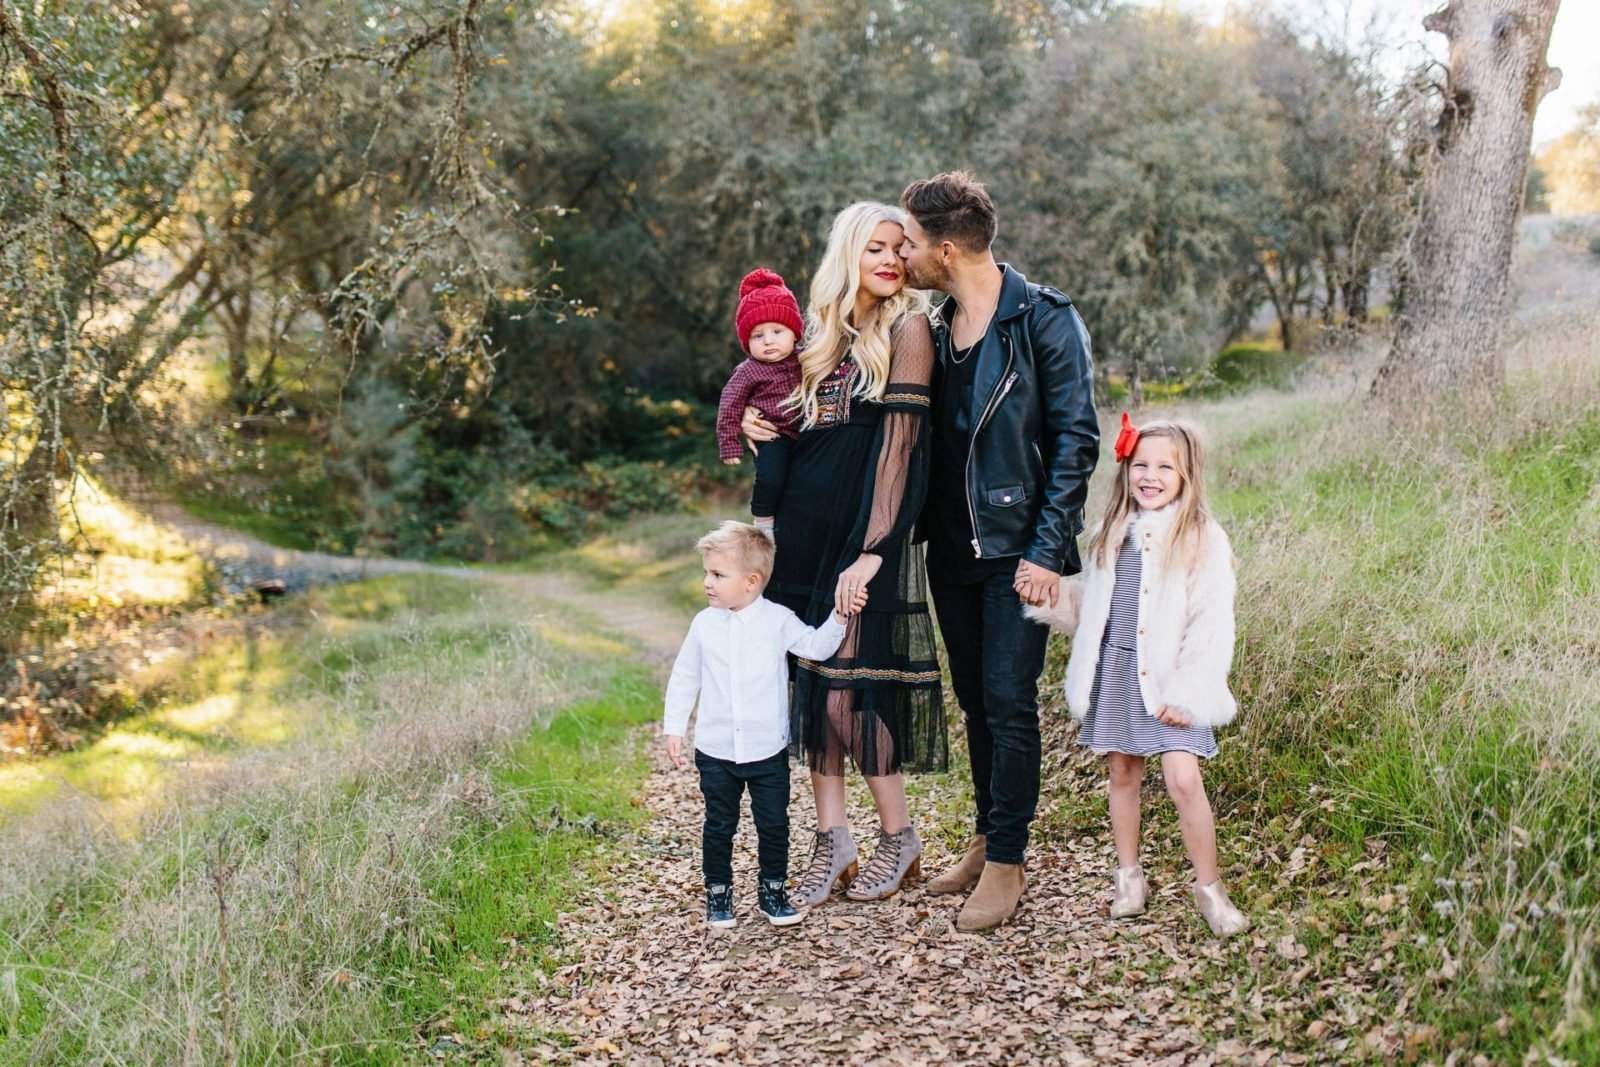 10 Spectacular Family Picture Ideas What To Wear ideas what to wear for family pictures ellabrooks blog 1 2020